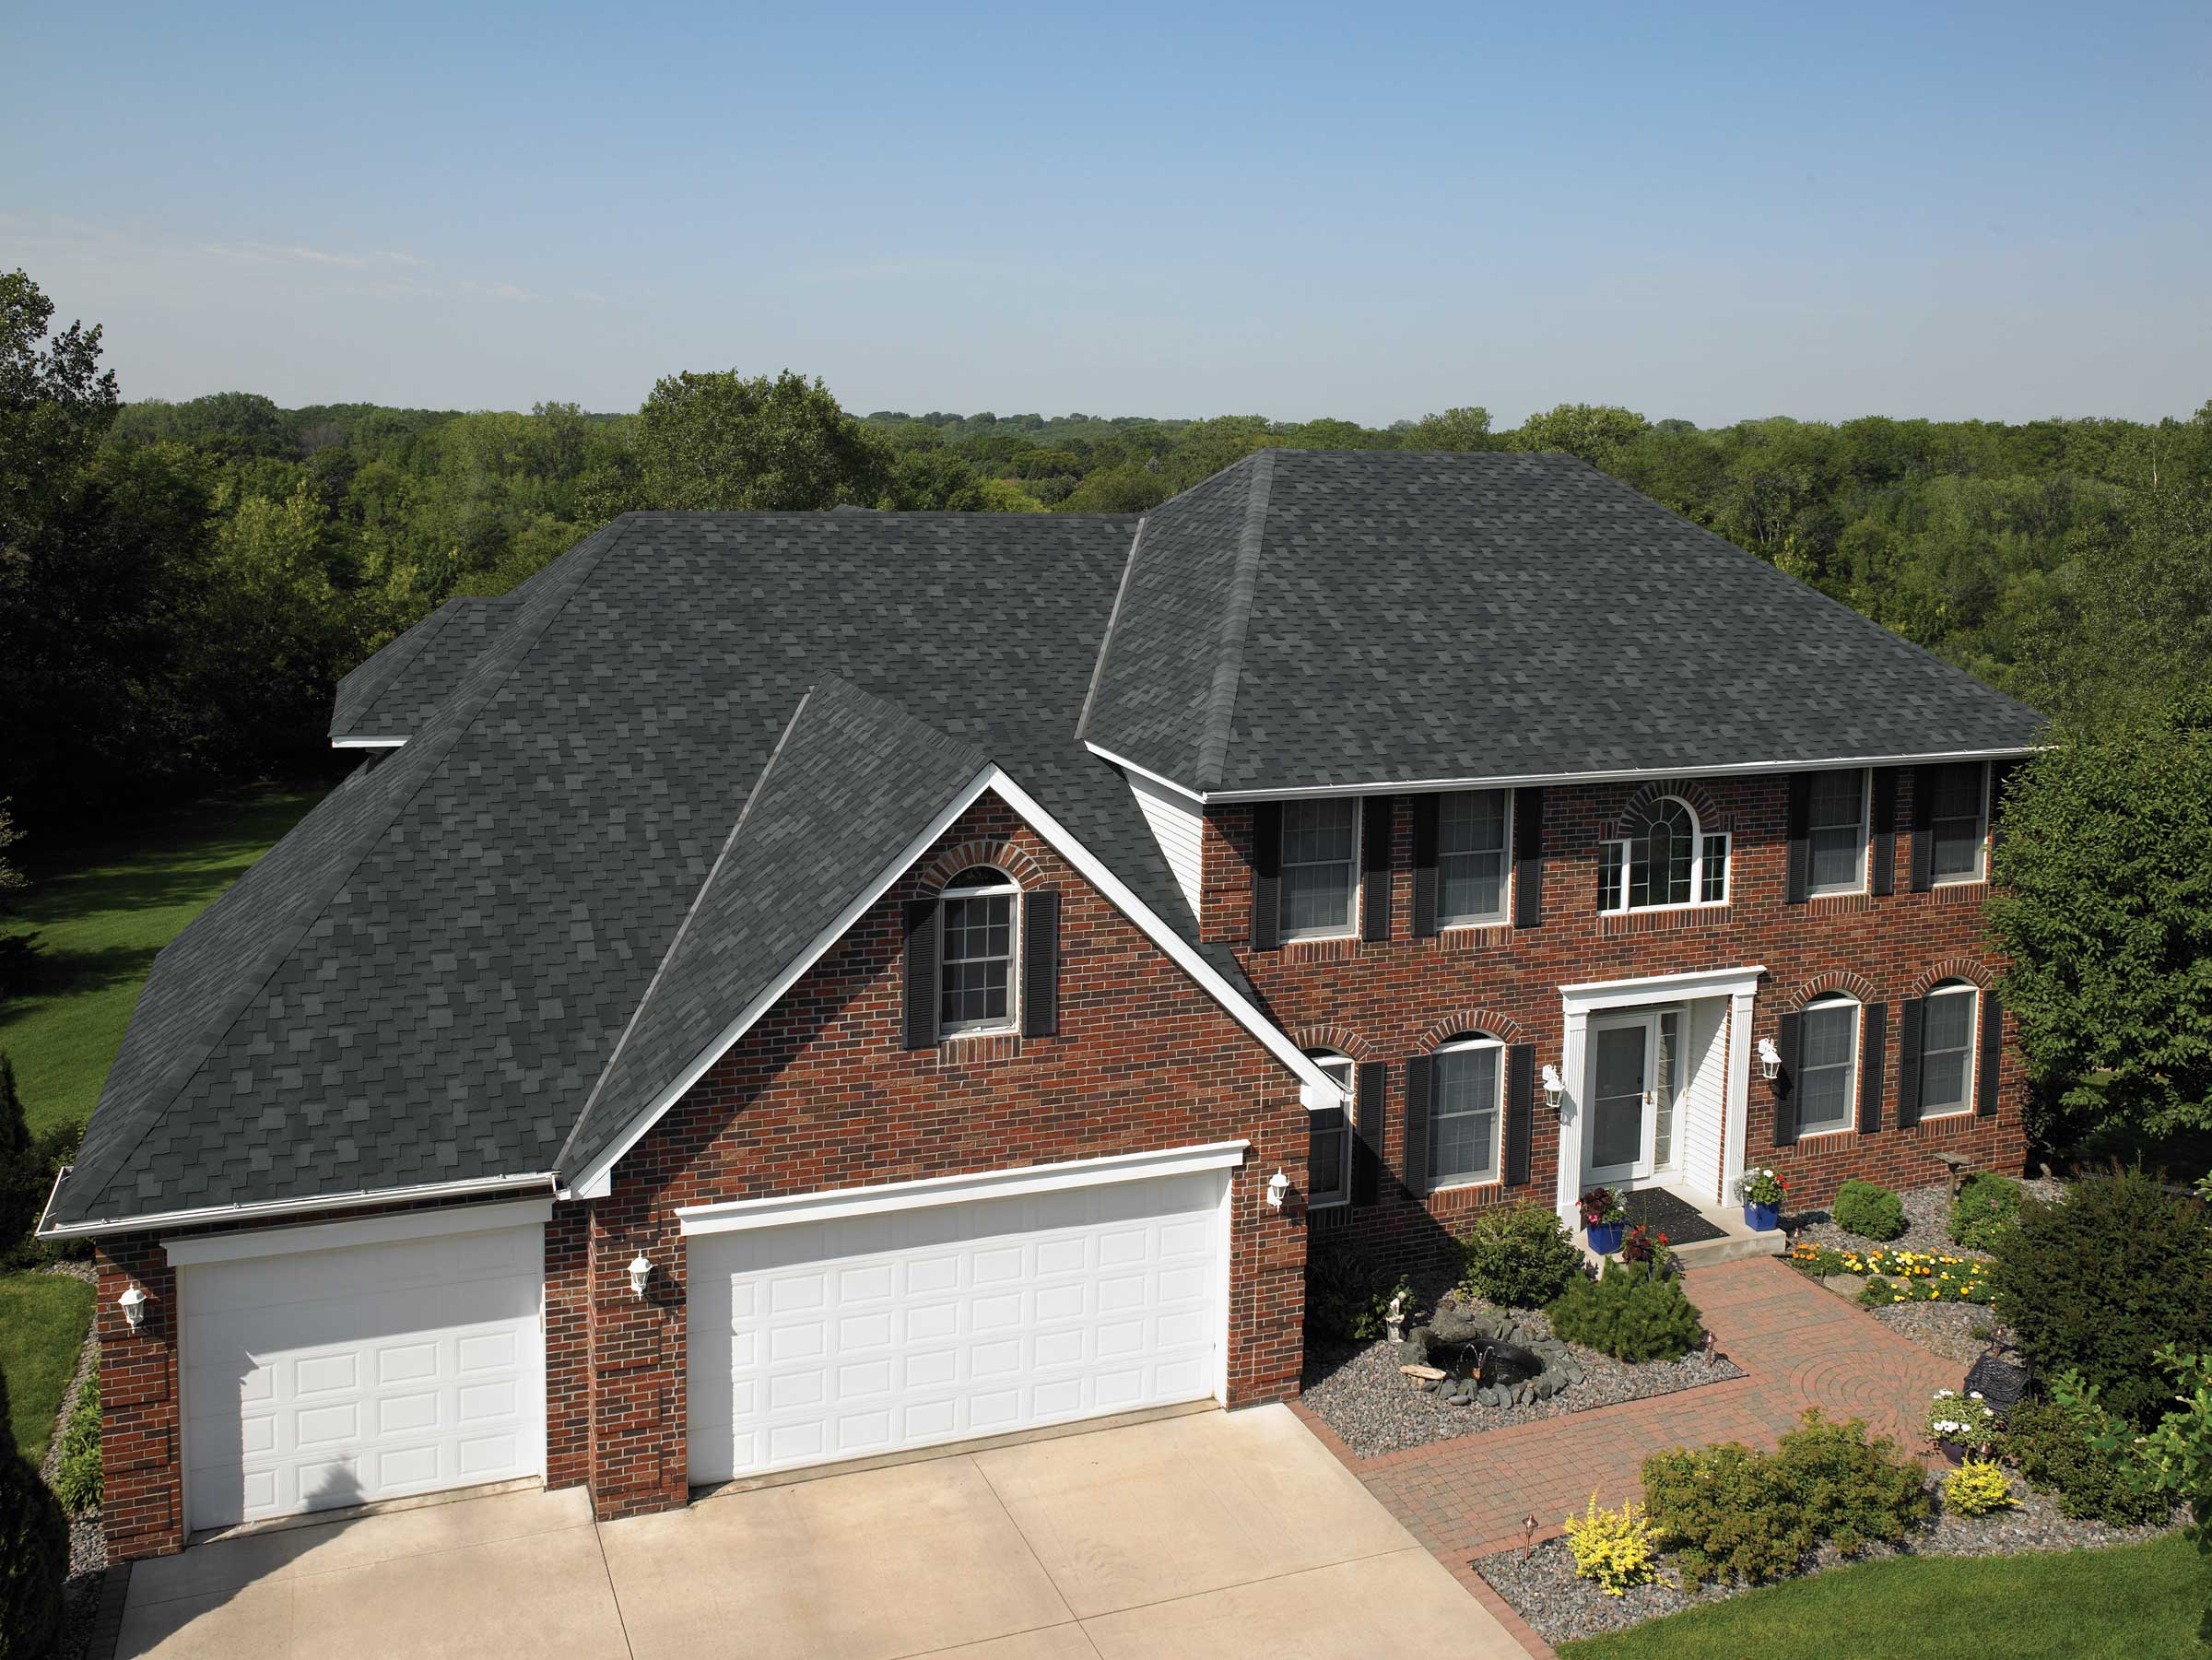 shingles-roofing-materials